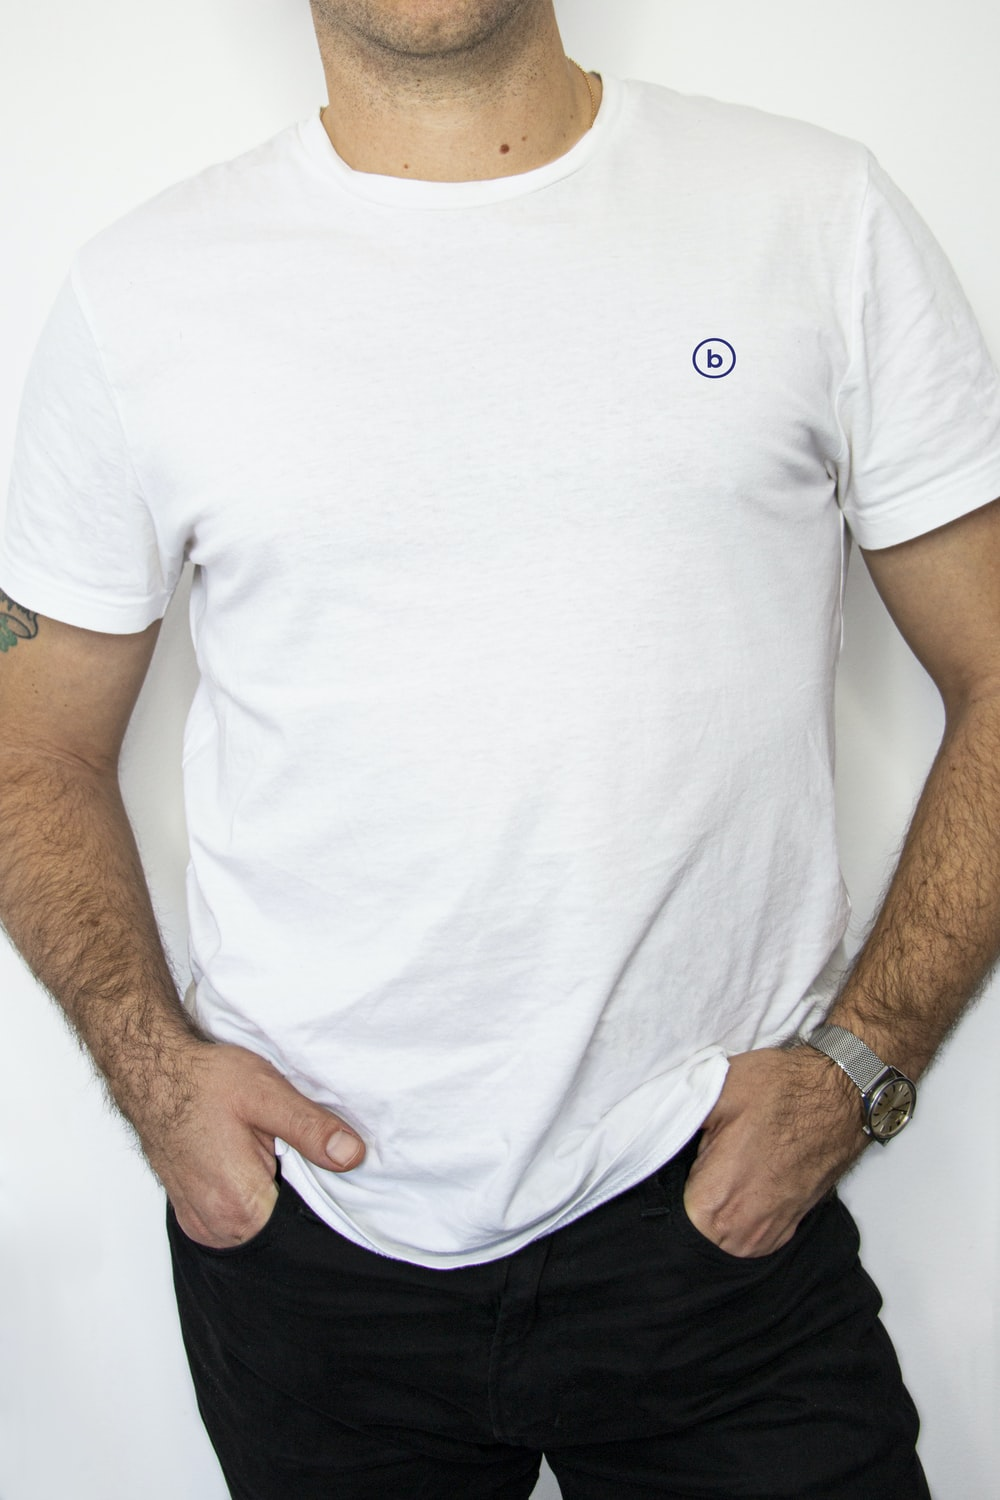 man wearing white crew-neck shirt and black denim jeans with hands in pocket